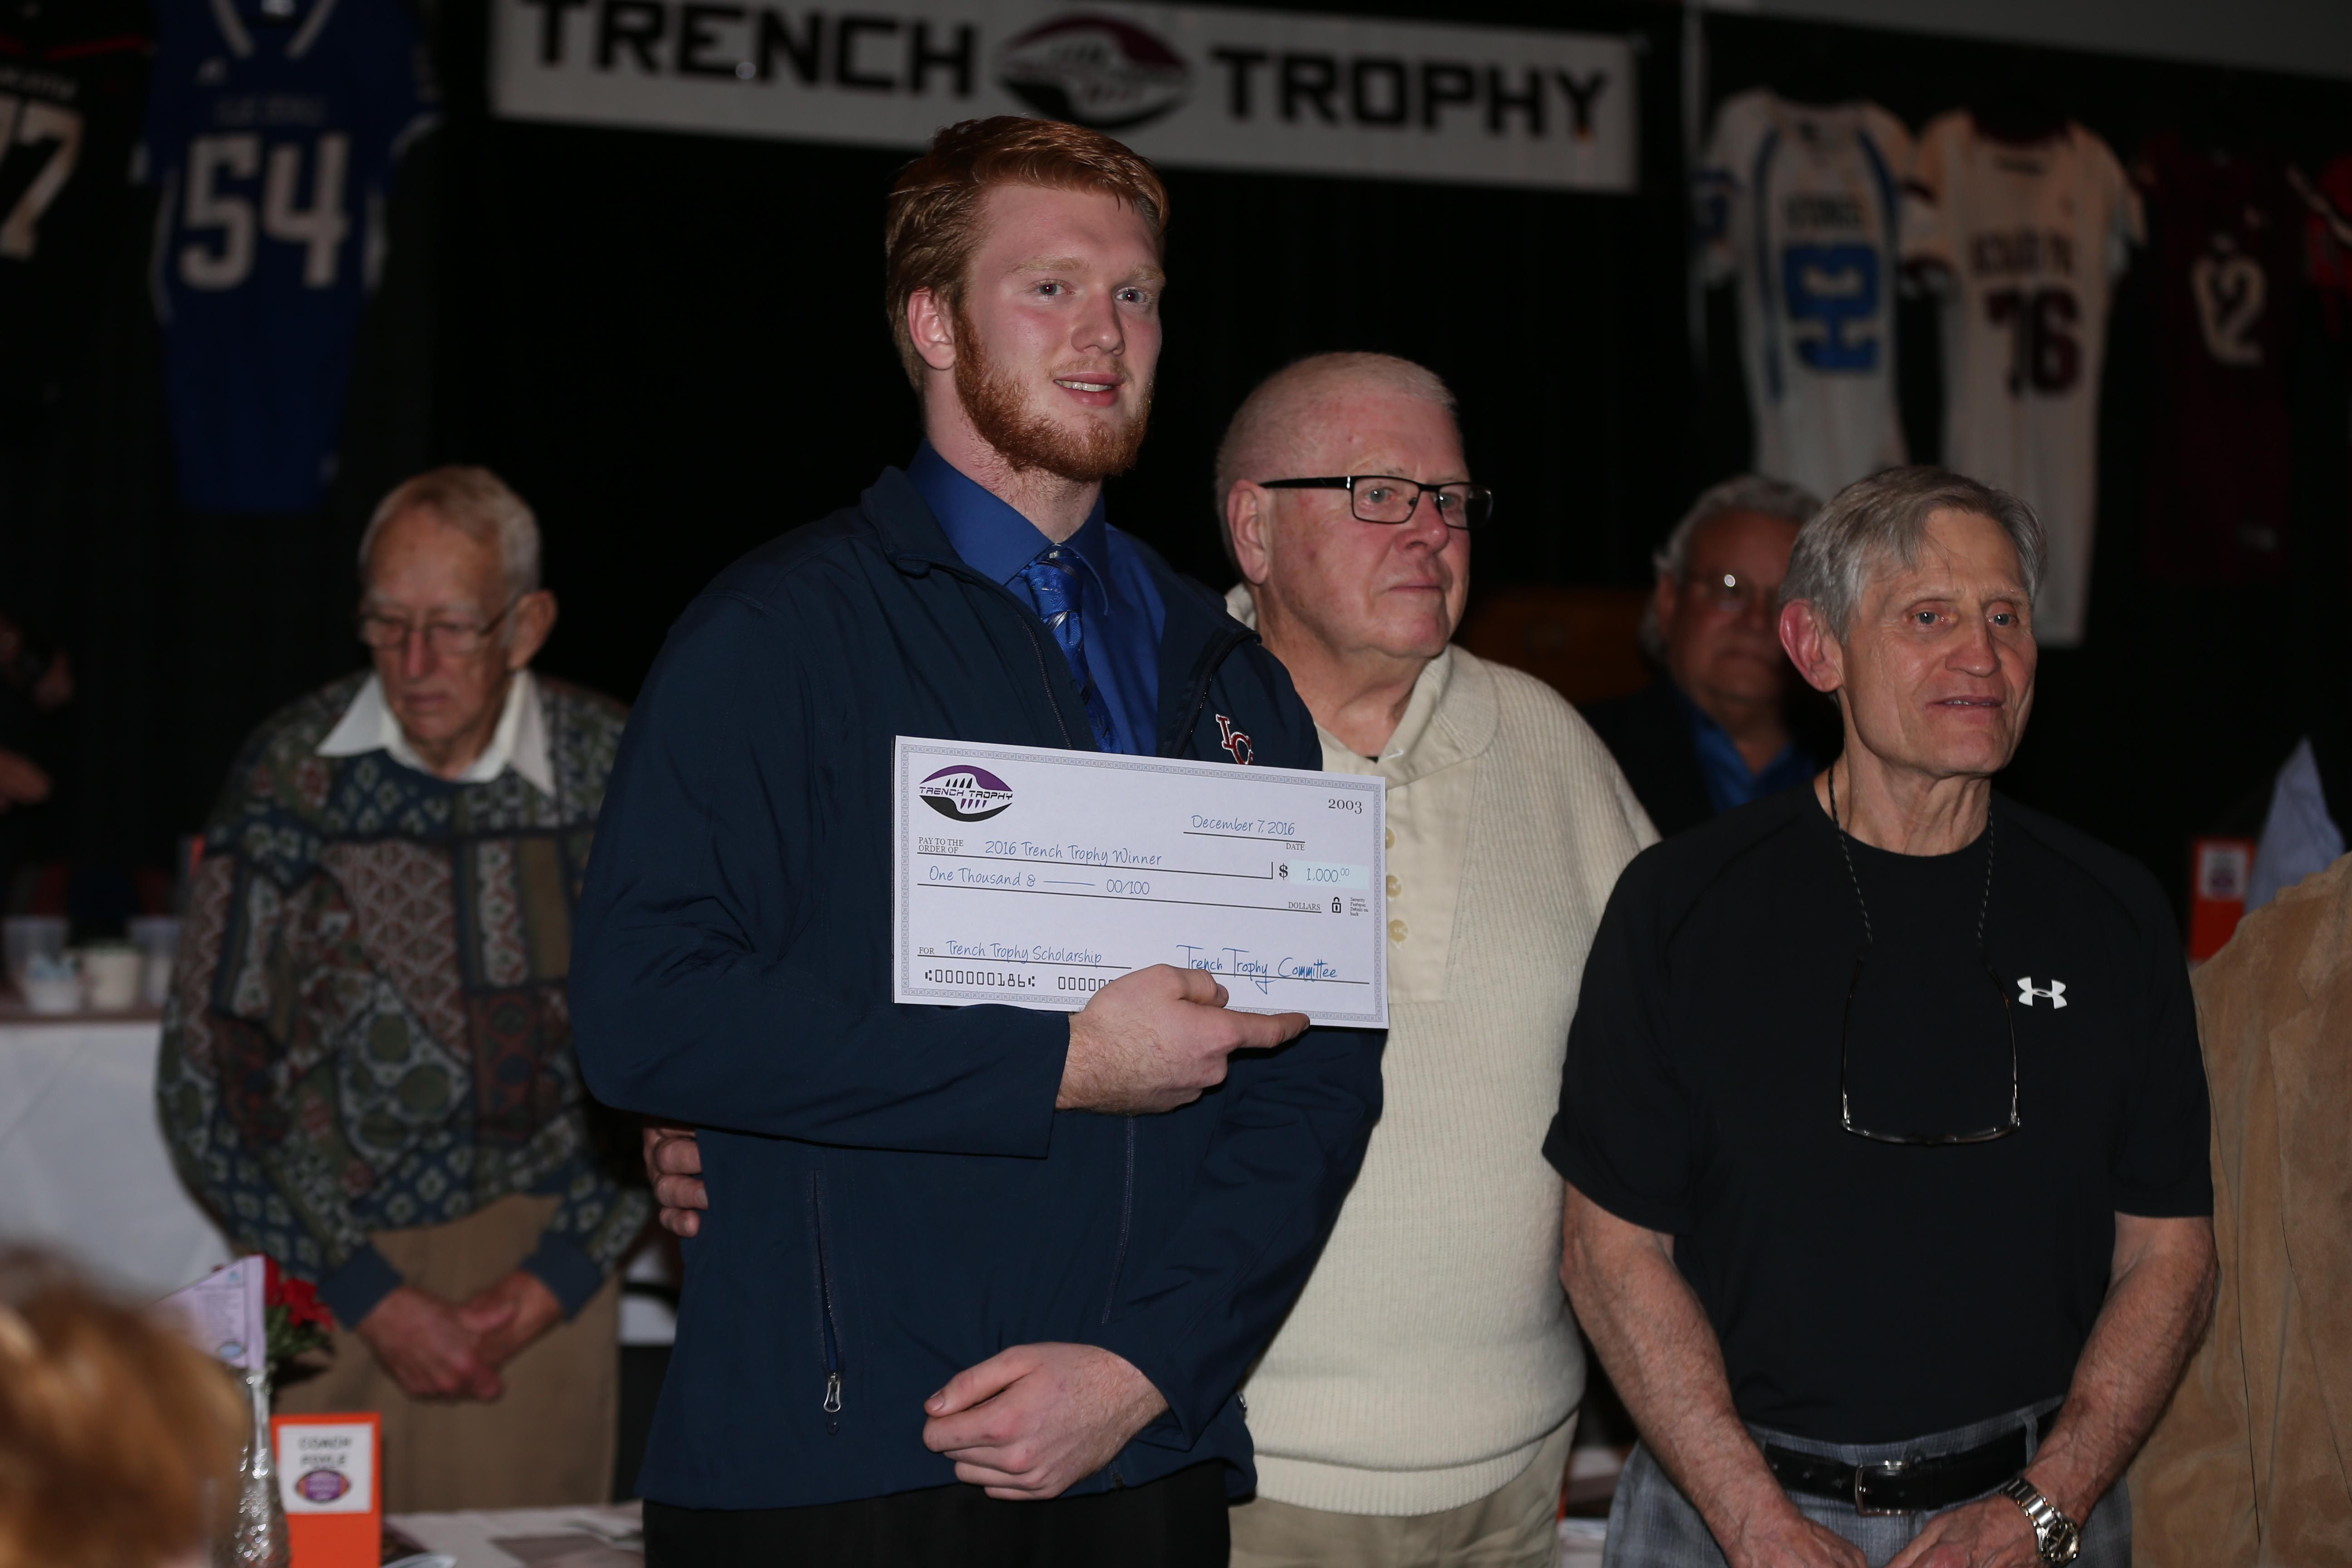 Nathan Emer of Iroquois wins the Trench Trophy at Lancaster Elks Lodge on Wednesday.  (James P. McCoy/Buffalo News)